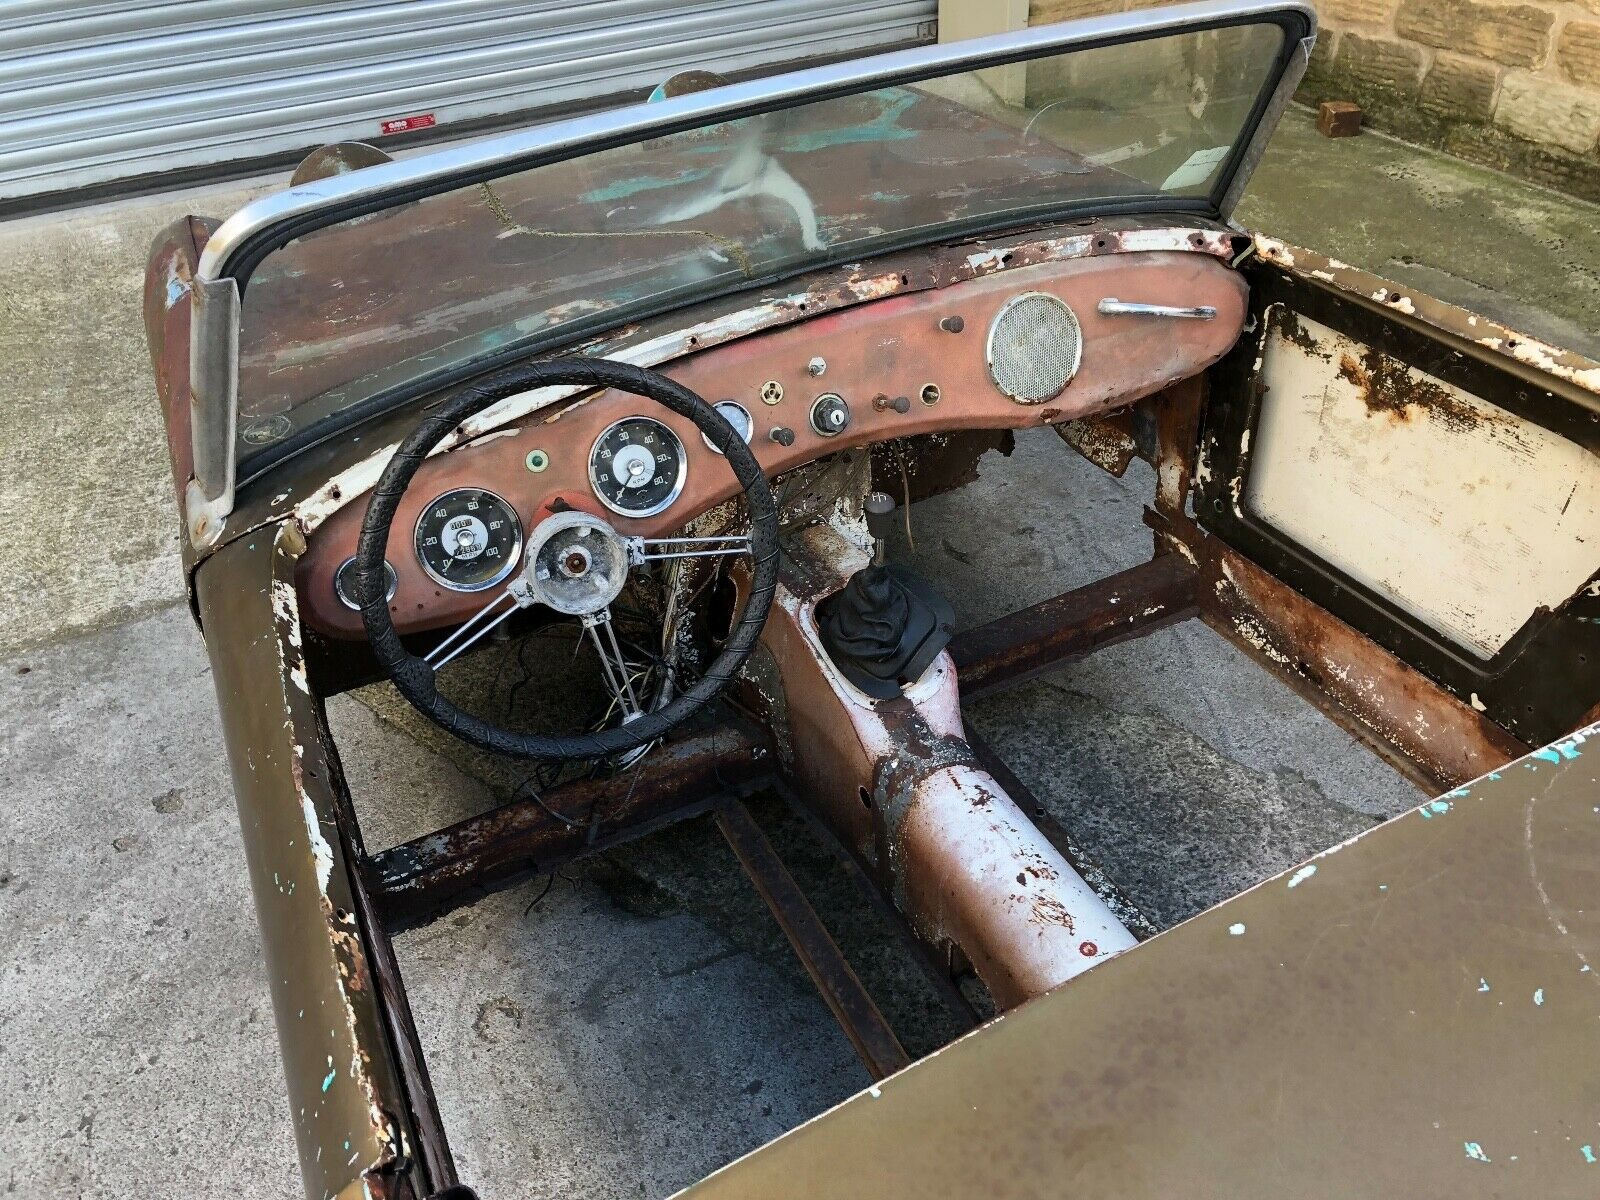 Austin-Healey Sprite Mk1 barn find